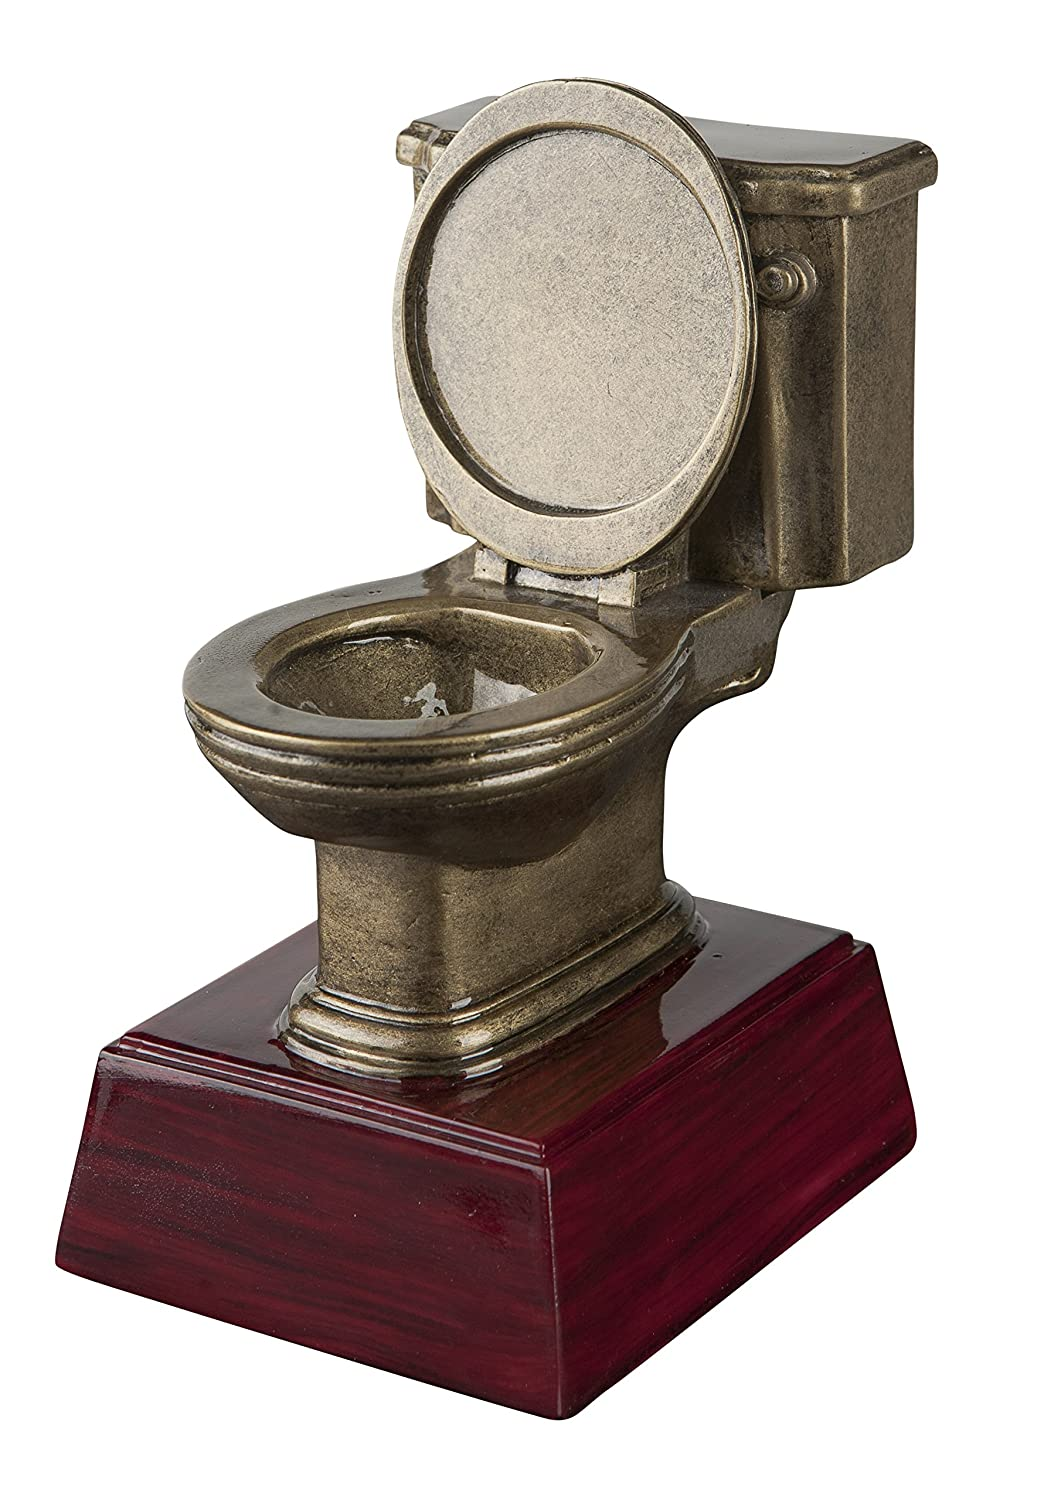 Gold Toilet Bowl Loser Trophy | Potty Training Award | Last Place Award | 6 Inch Tall Free Engraved Plate on Request Decade Awards